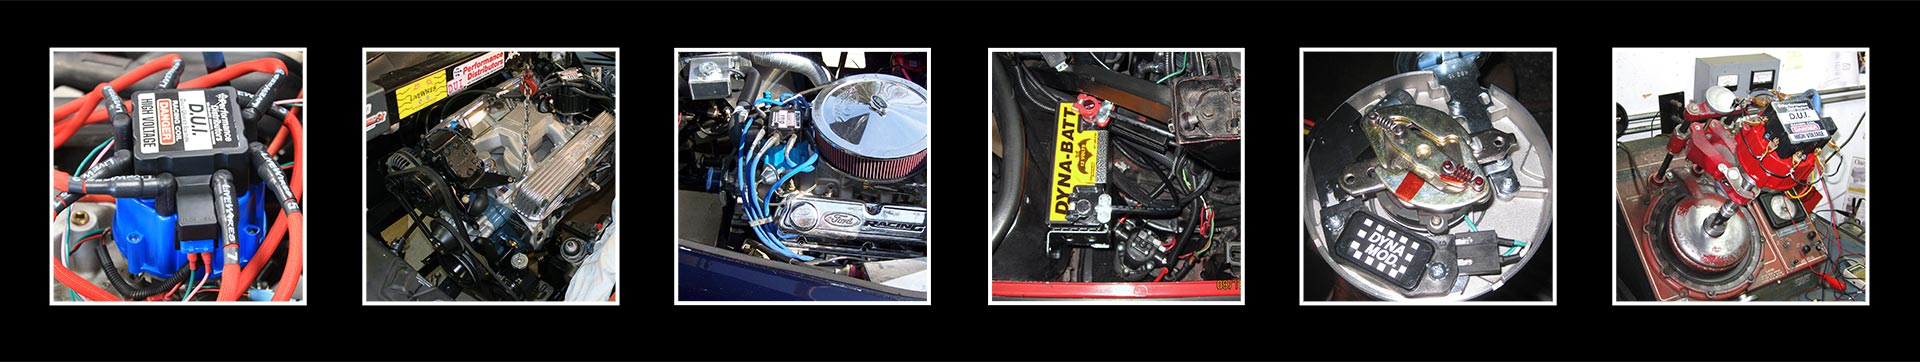 Professional Tips Ignition Systems Rev Limiters LiveWire Florida